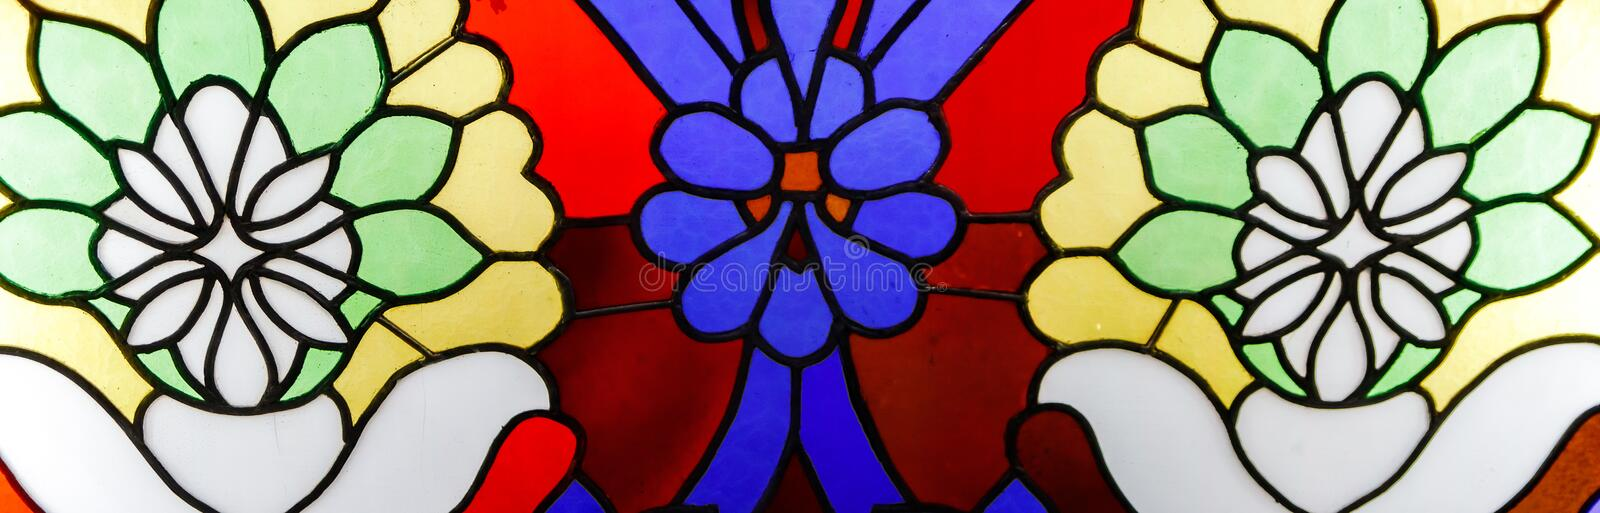 Detail of a stained glass window. Bright colors, shot close-up royalty free stock images